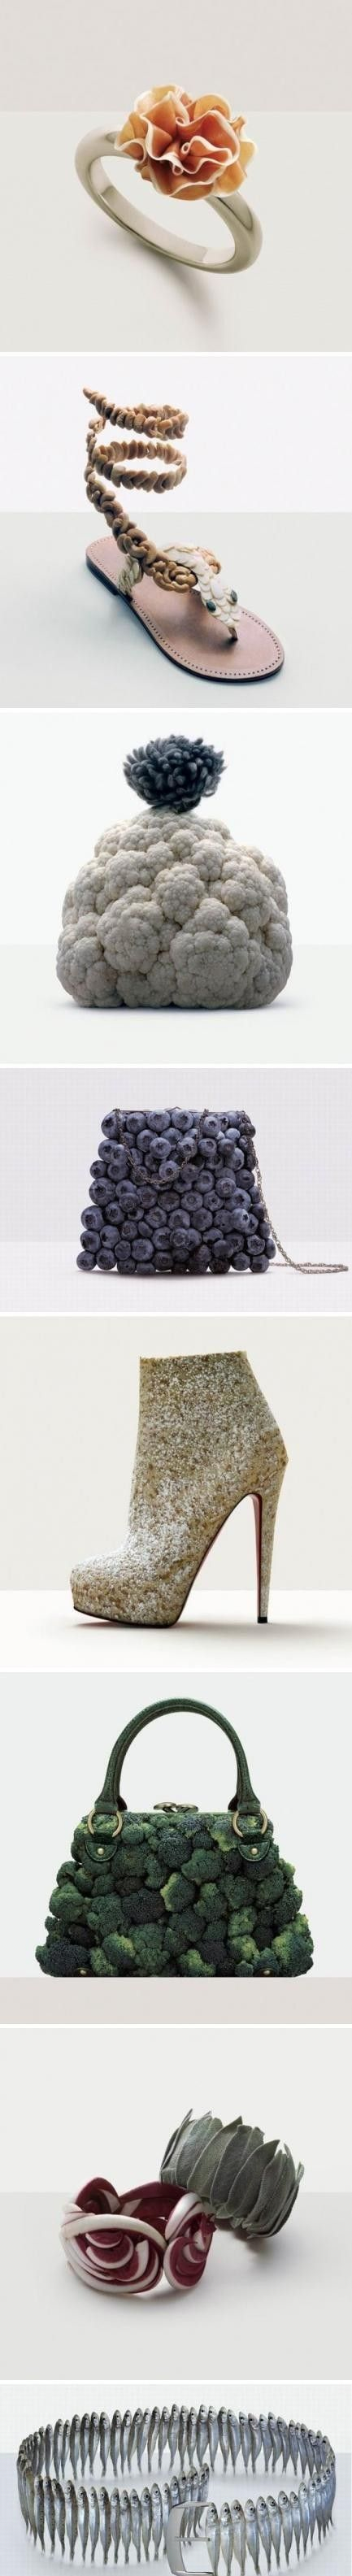 1000+ images about Fashion & Food - Food & Fashion on Pinterest ...